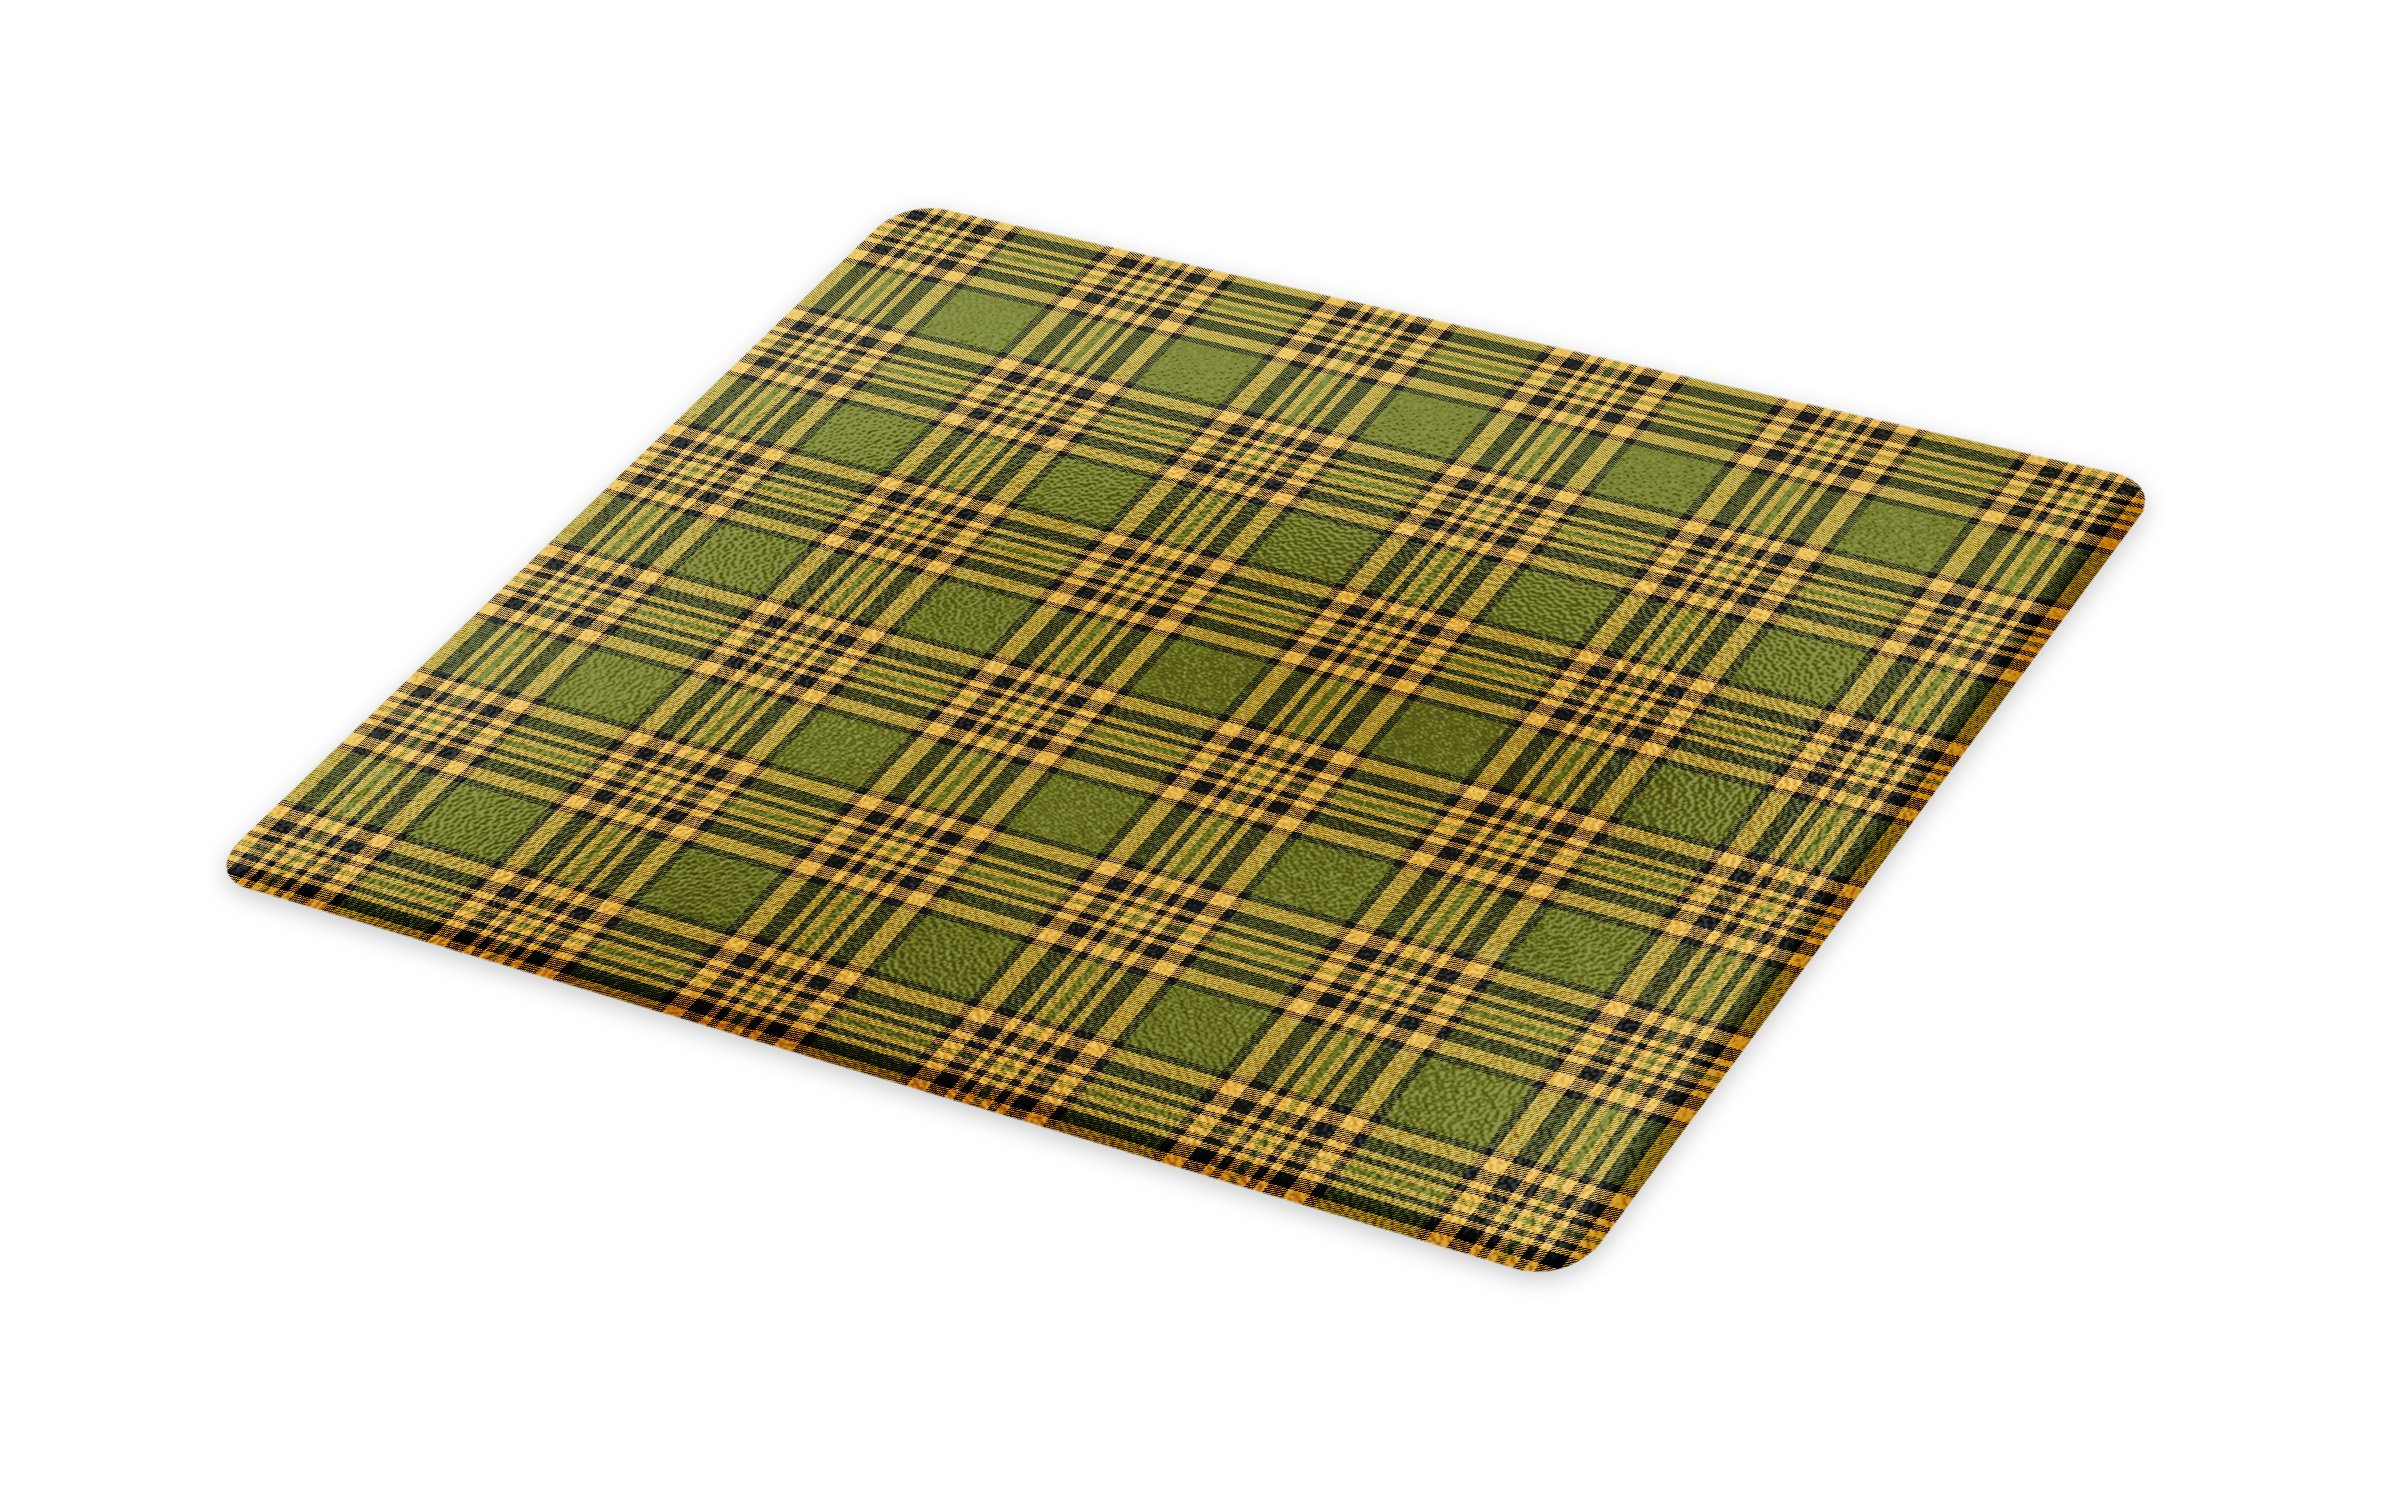 Lunarable Plaid Cutting Board, Tartan Pattern in Autumn Tones Old Fashioned Design Country Illustration, Decorative Tempered Glass Cutting and Serving Board, Large Size, Olive Green Mustard